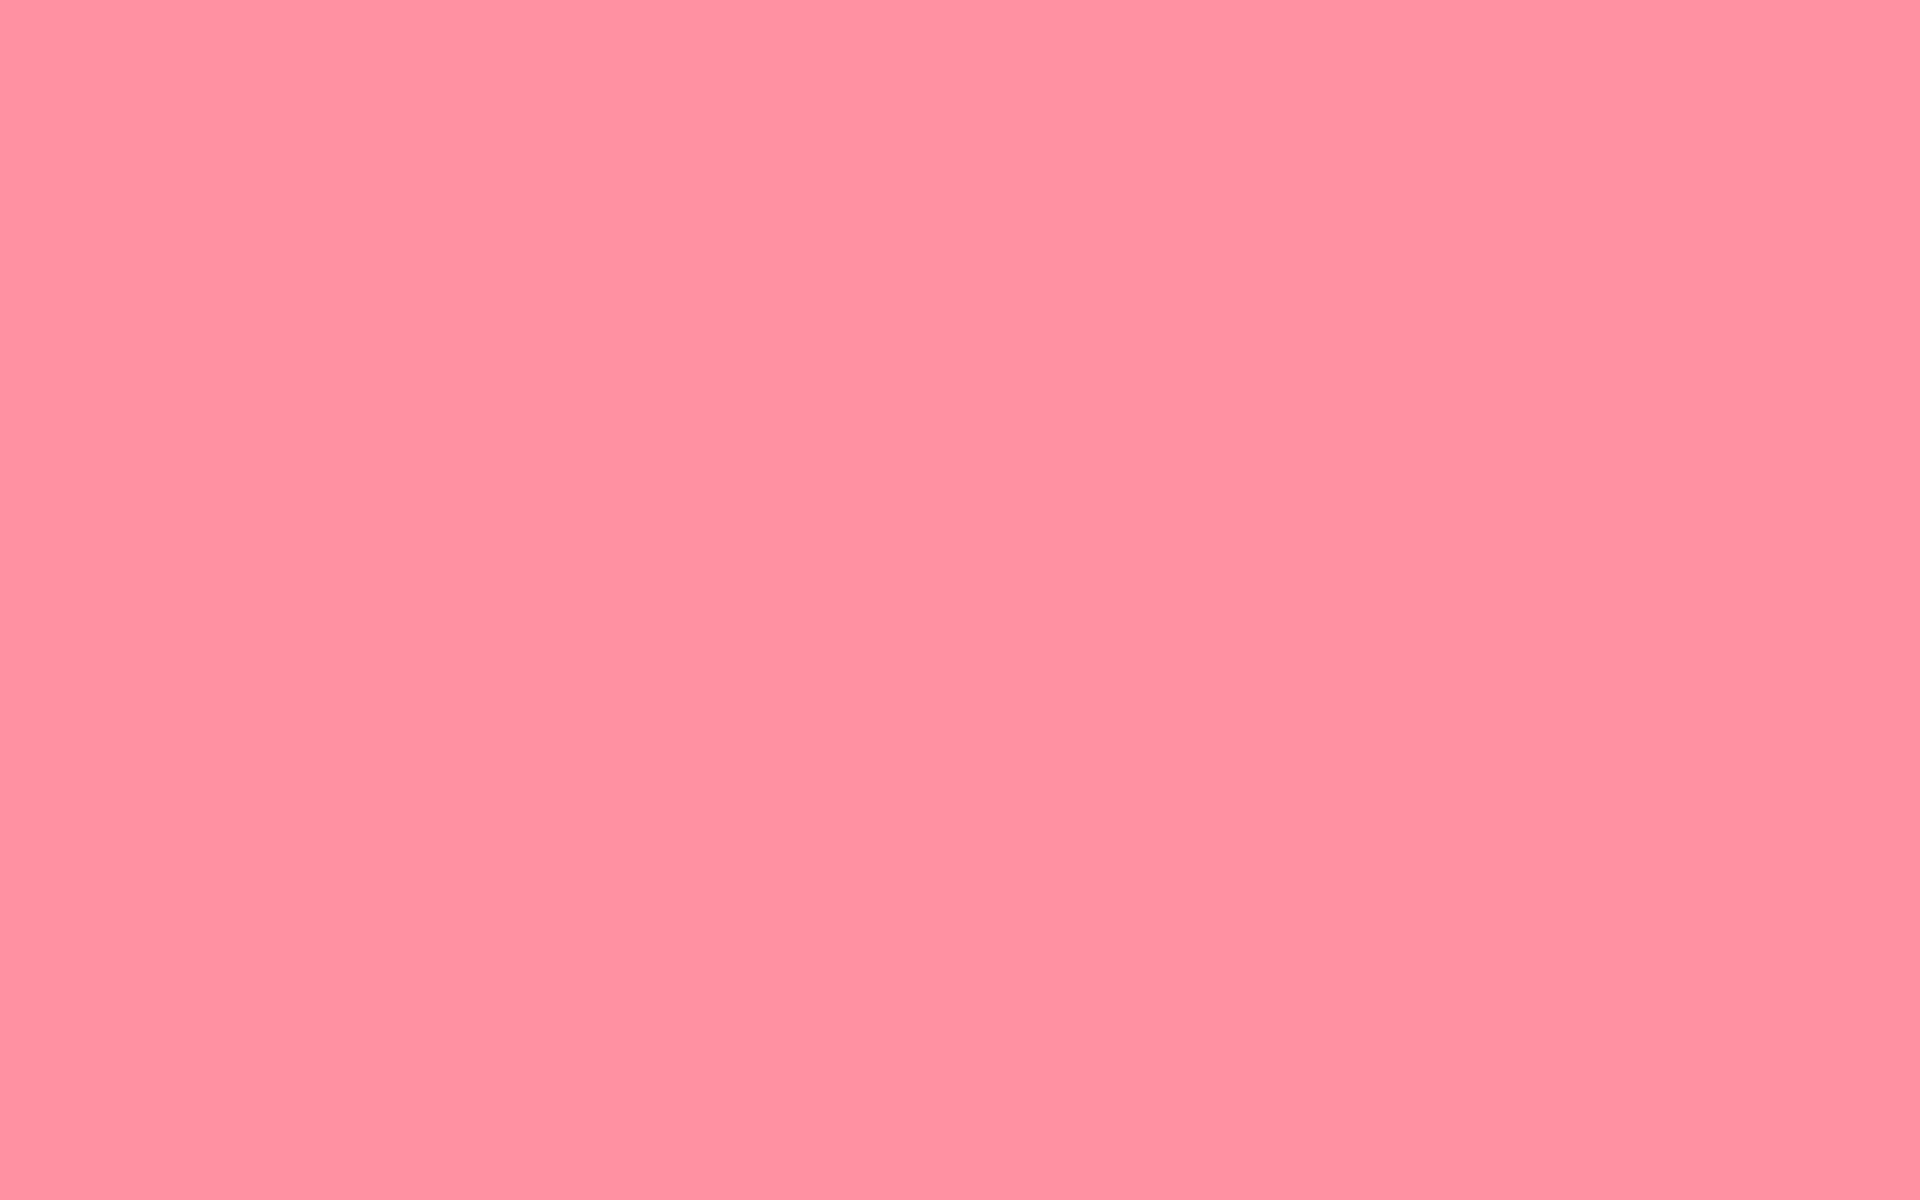 1920x1200 Salmon Pink Solid Color Background